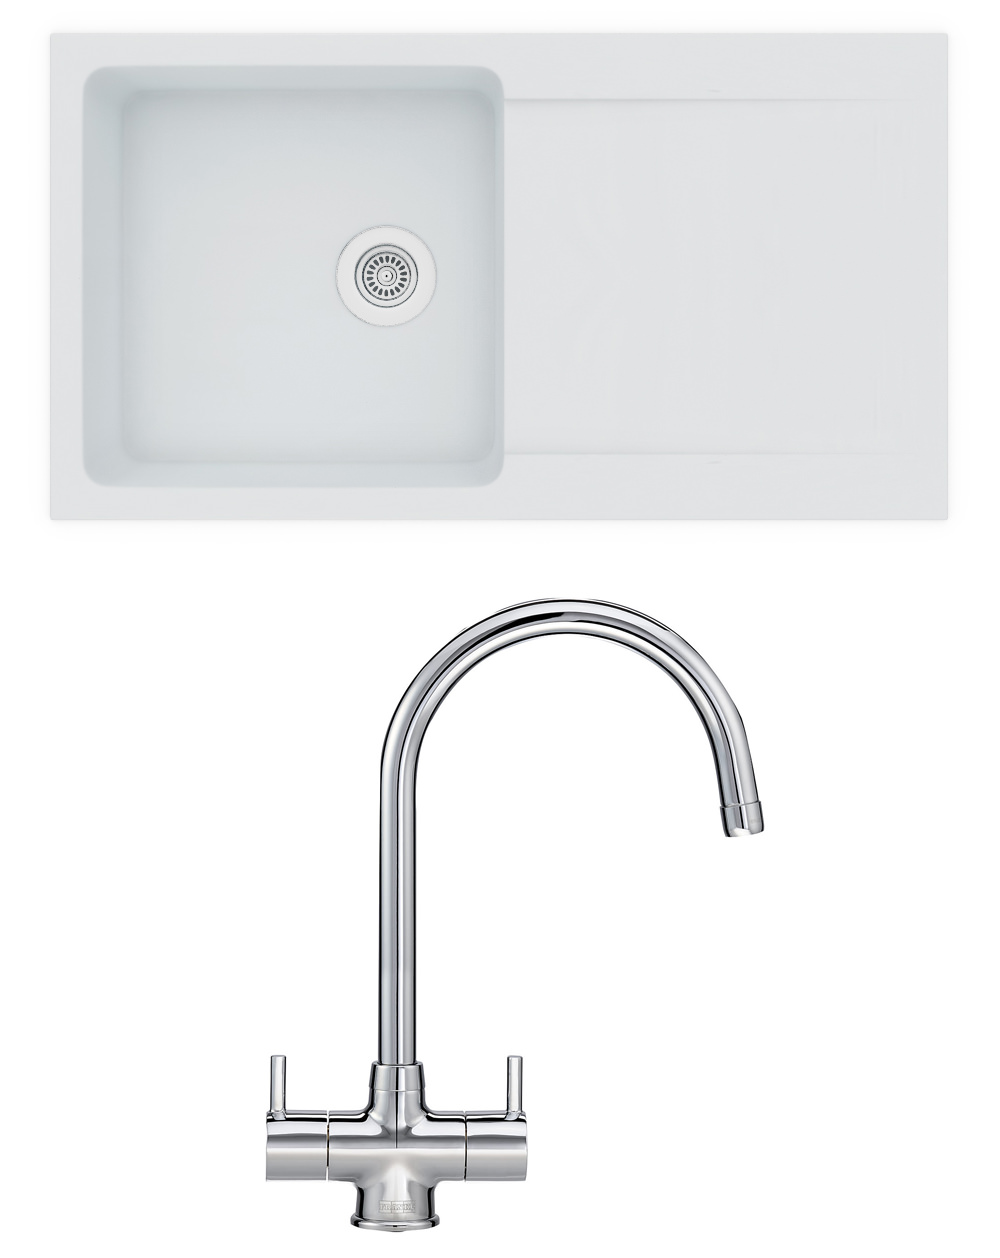 Additional Image Of Franke Orion OID 611 94 Propack   Tectonite Polar White  Sink And